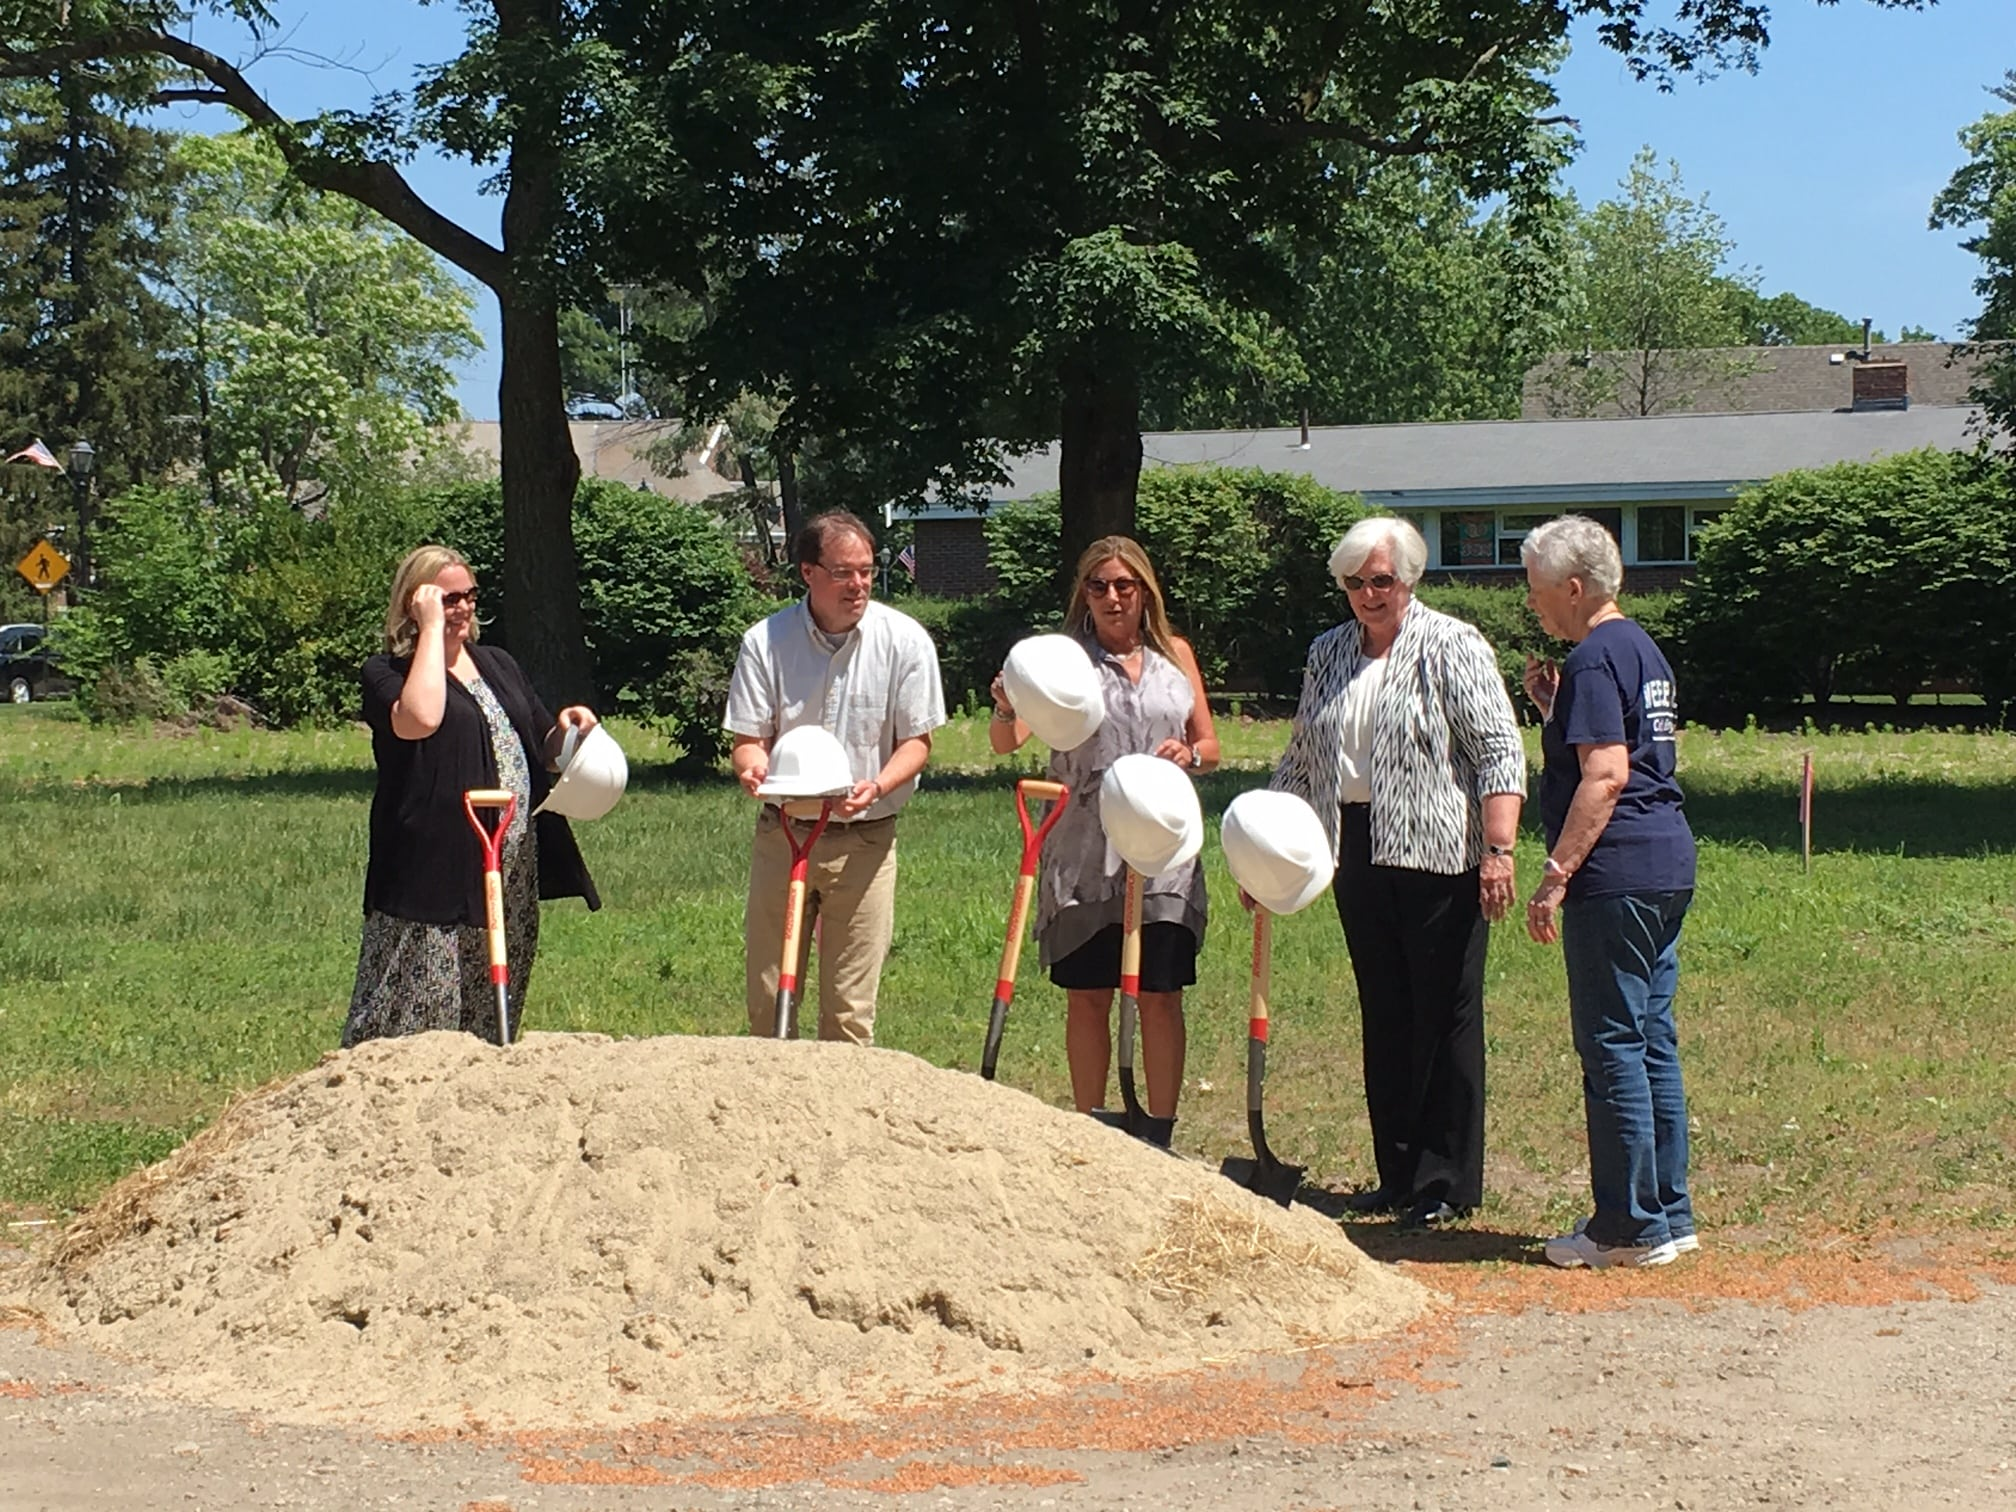 Tolles-Parsons senior center groundbreaking in Wellesley